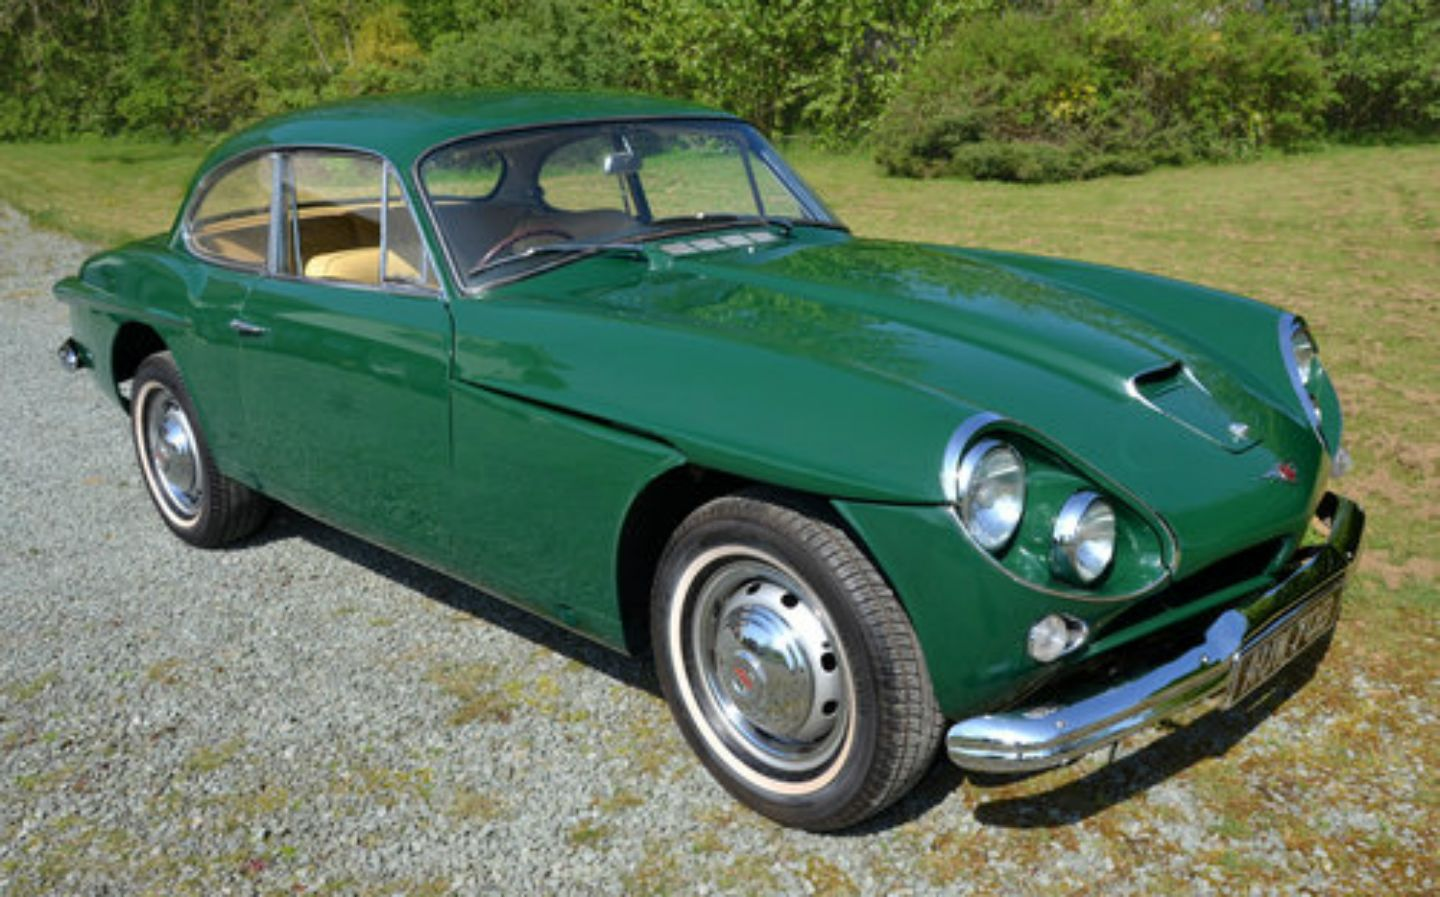 Sean Connery's Jensen CV8 sports car up for sale